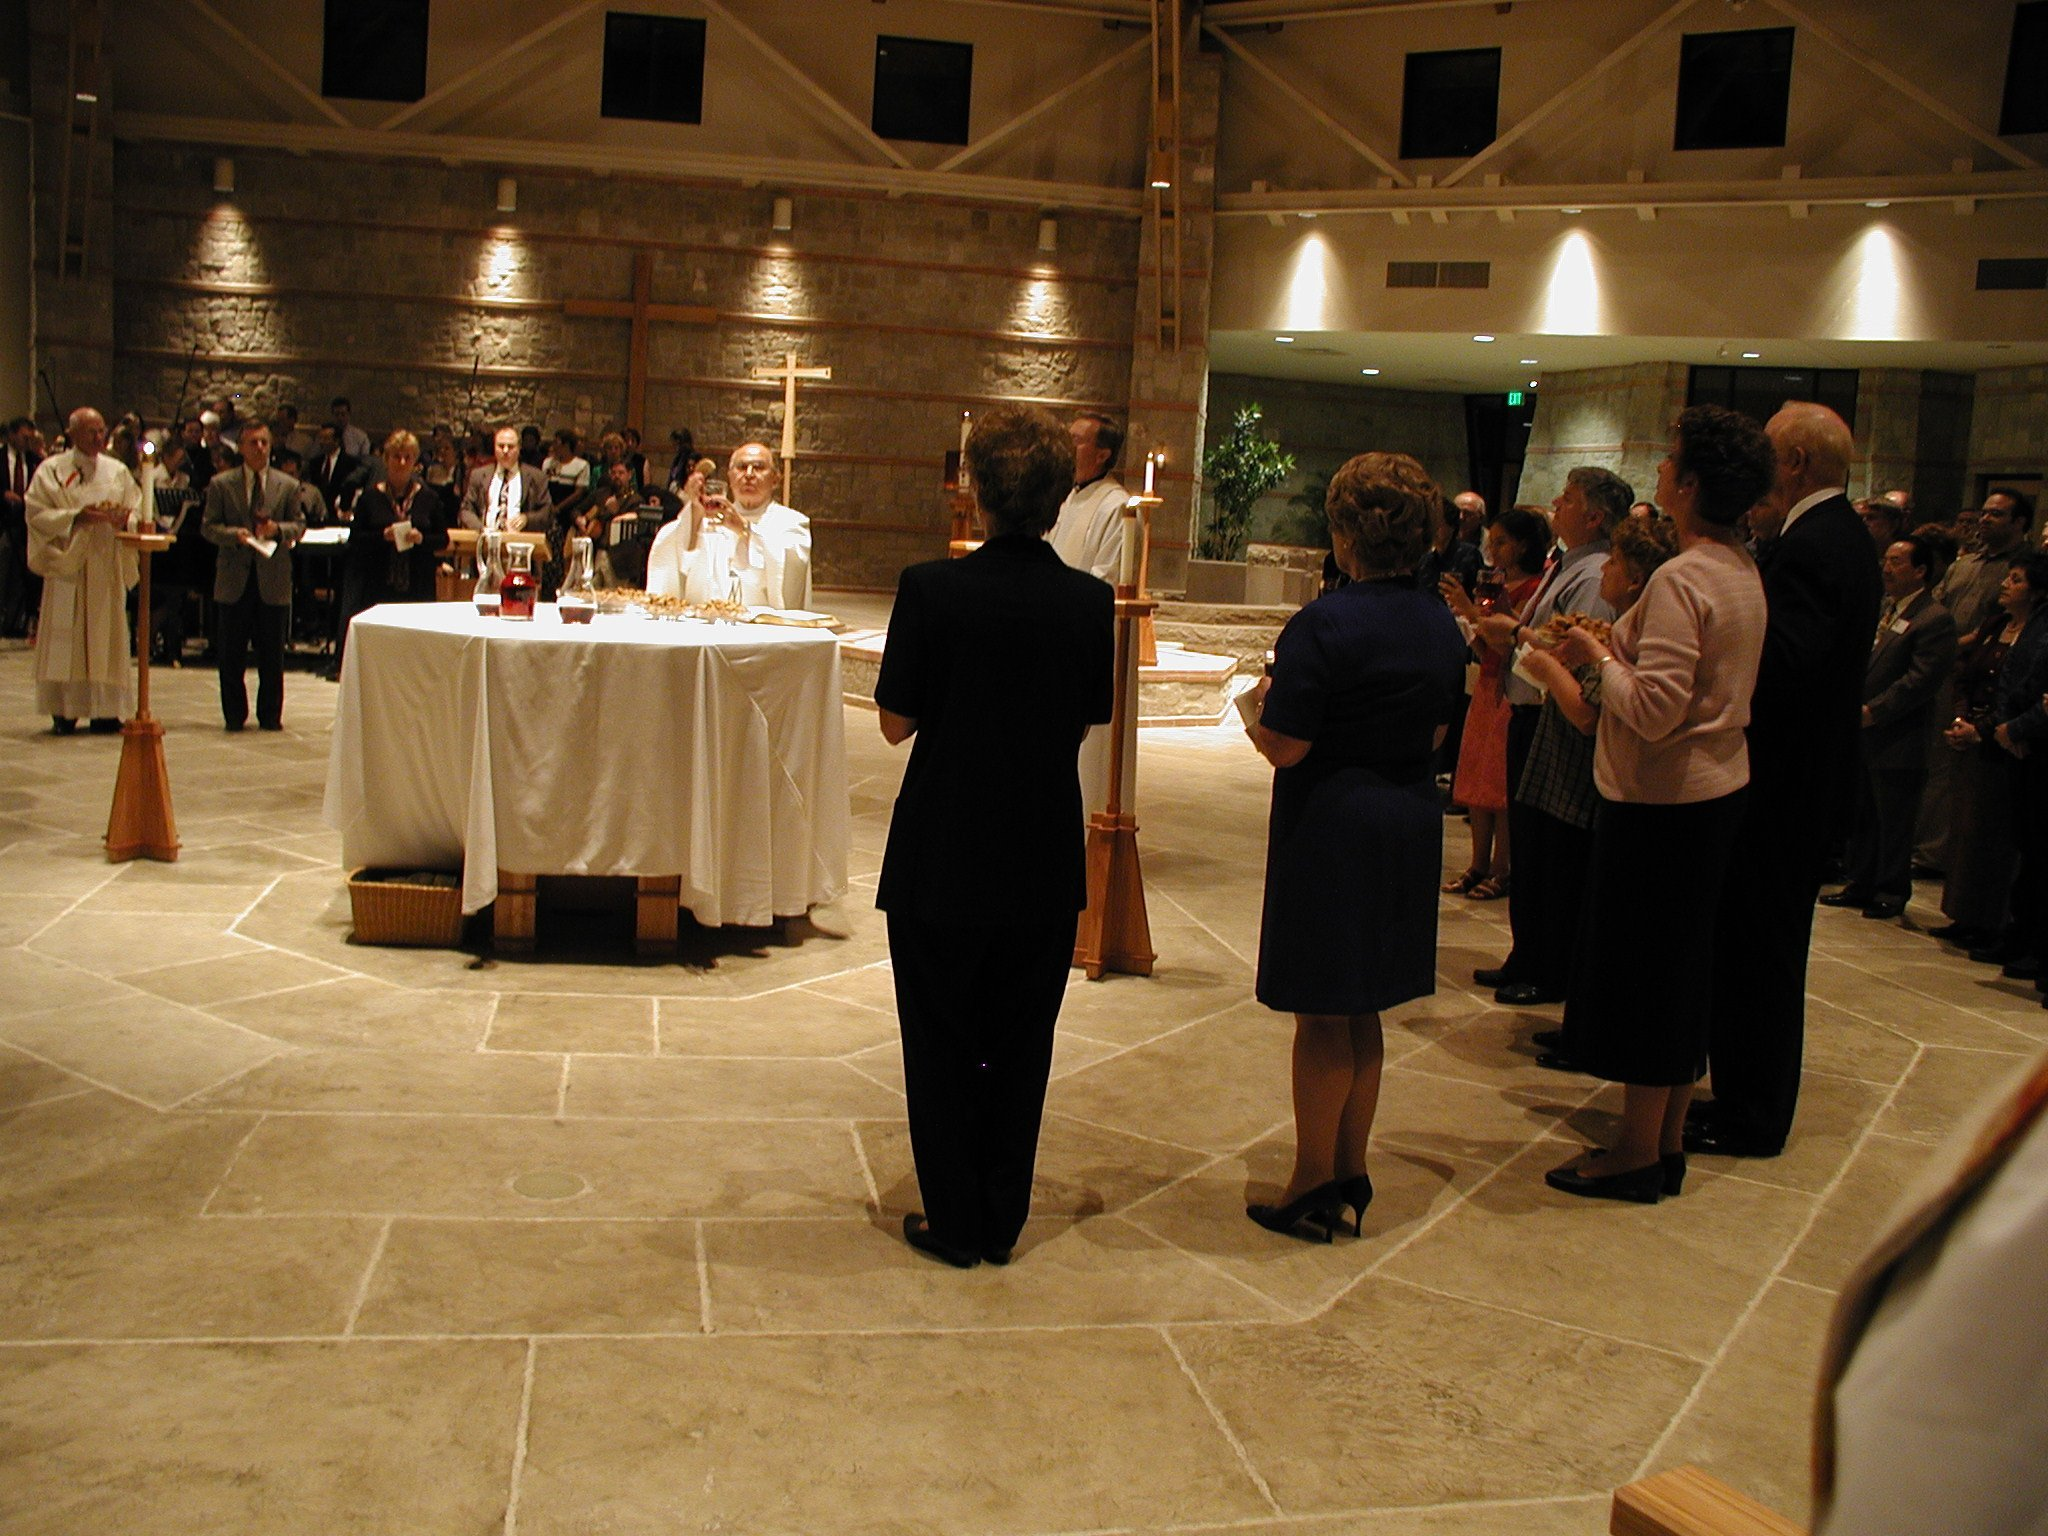 Eucharistic Ministers gathered around the Altar